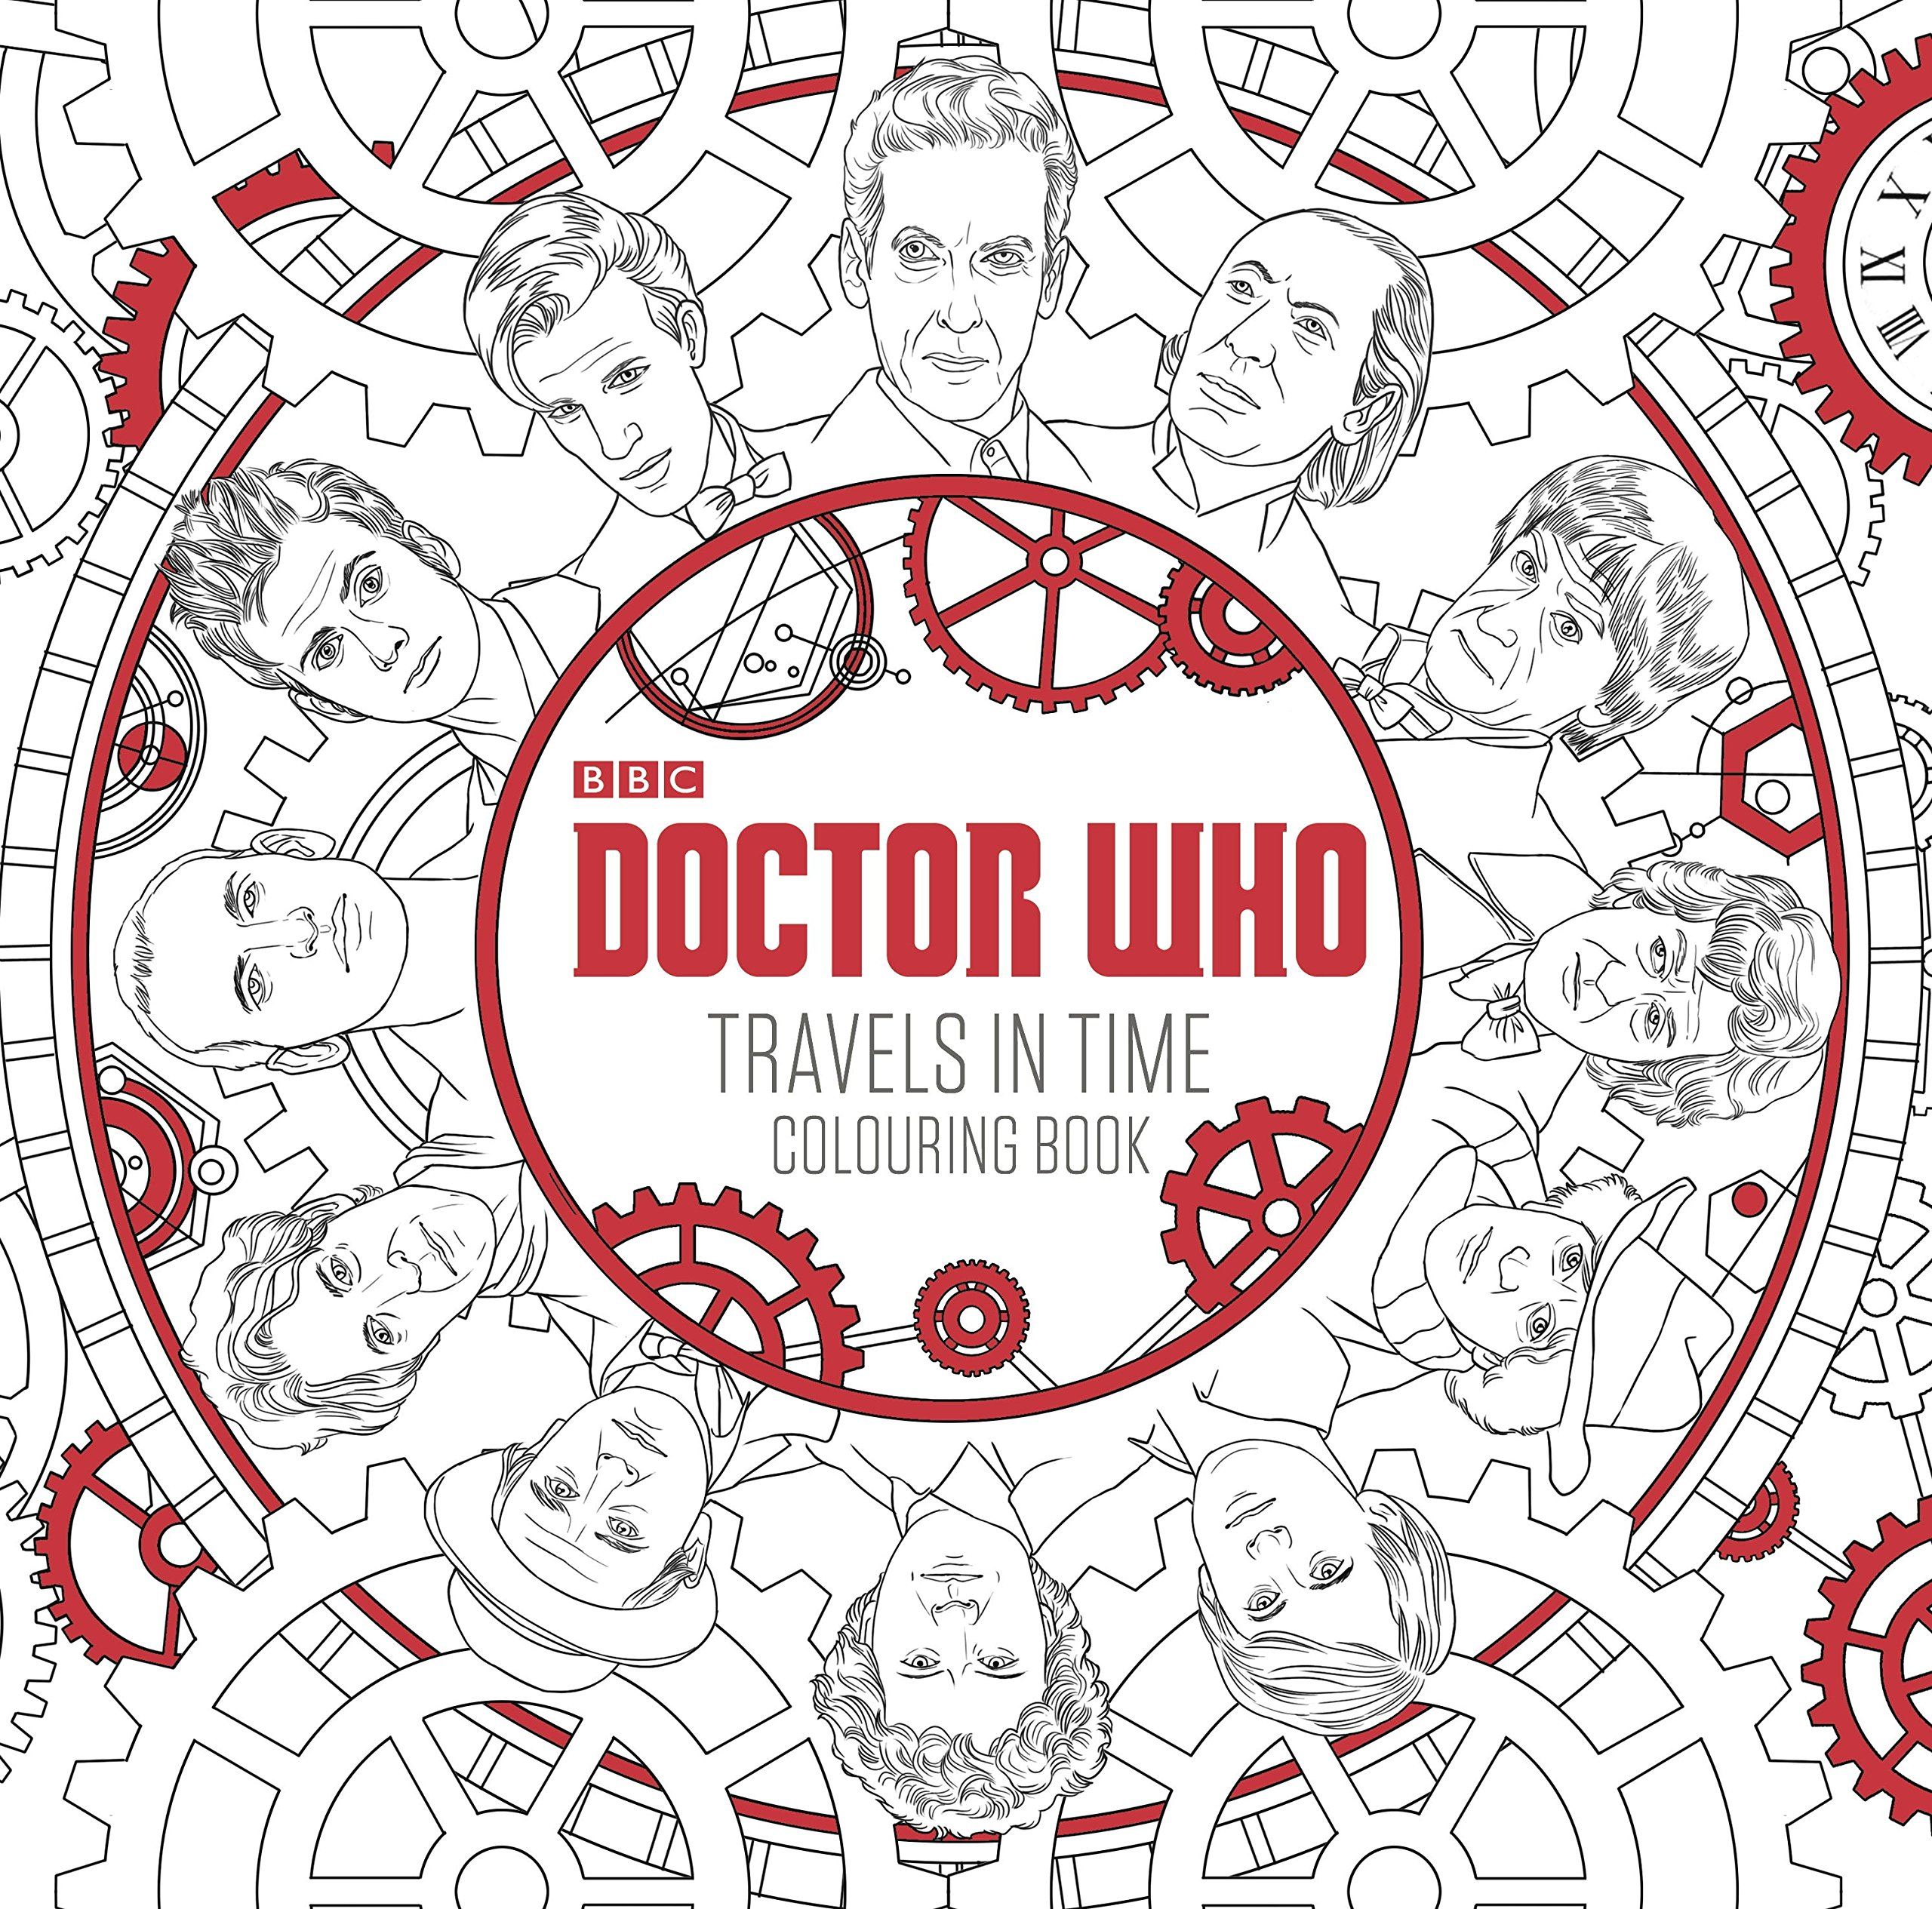 Doctor Who Travels In Time Colouring Book Amazoncouk BBC 9781405927260 Books